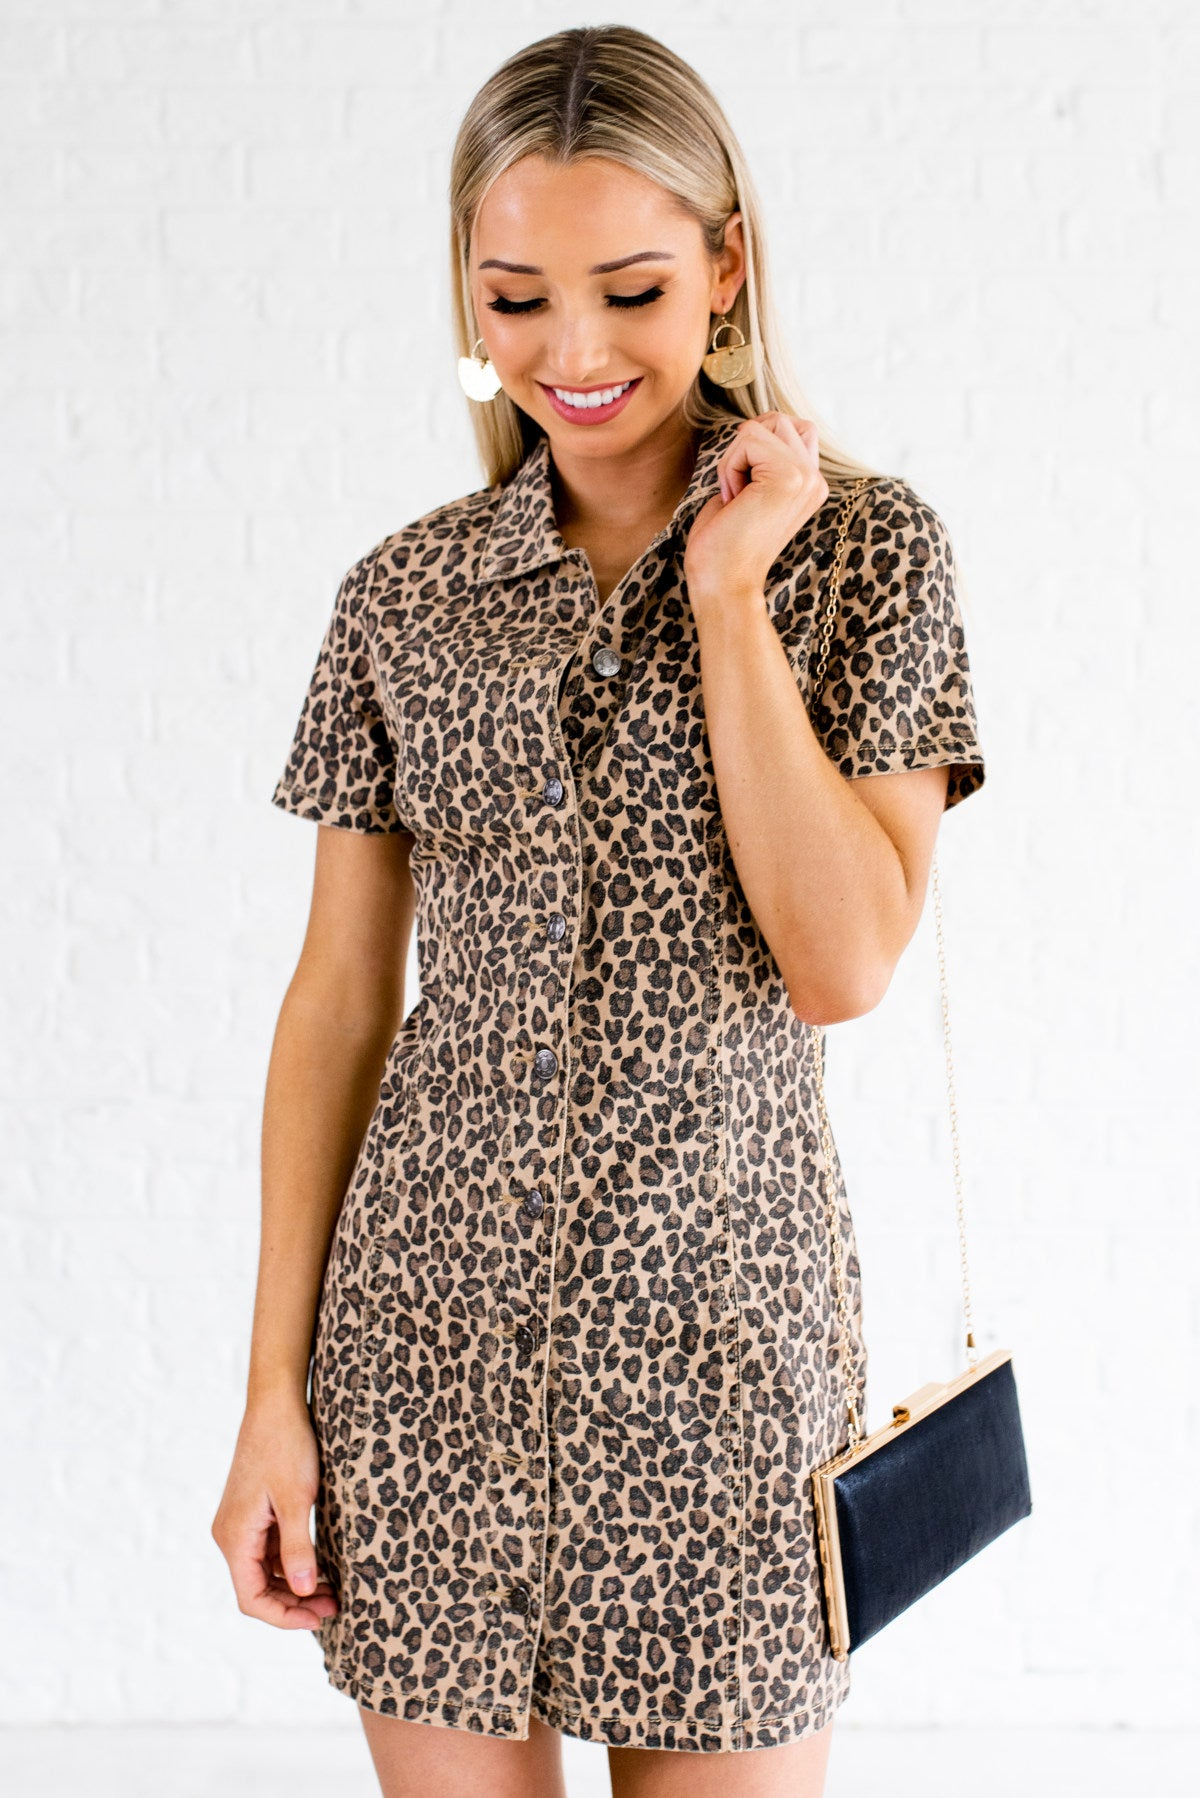 Beige Brown and Black Leopard Print Pattern Boutique Mini Dresses for Women